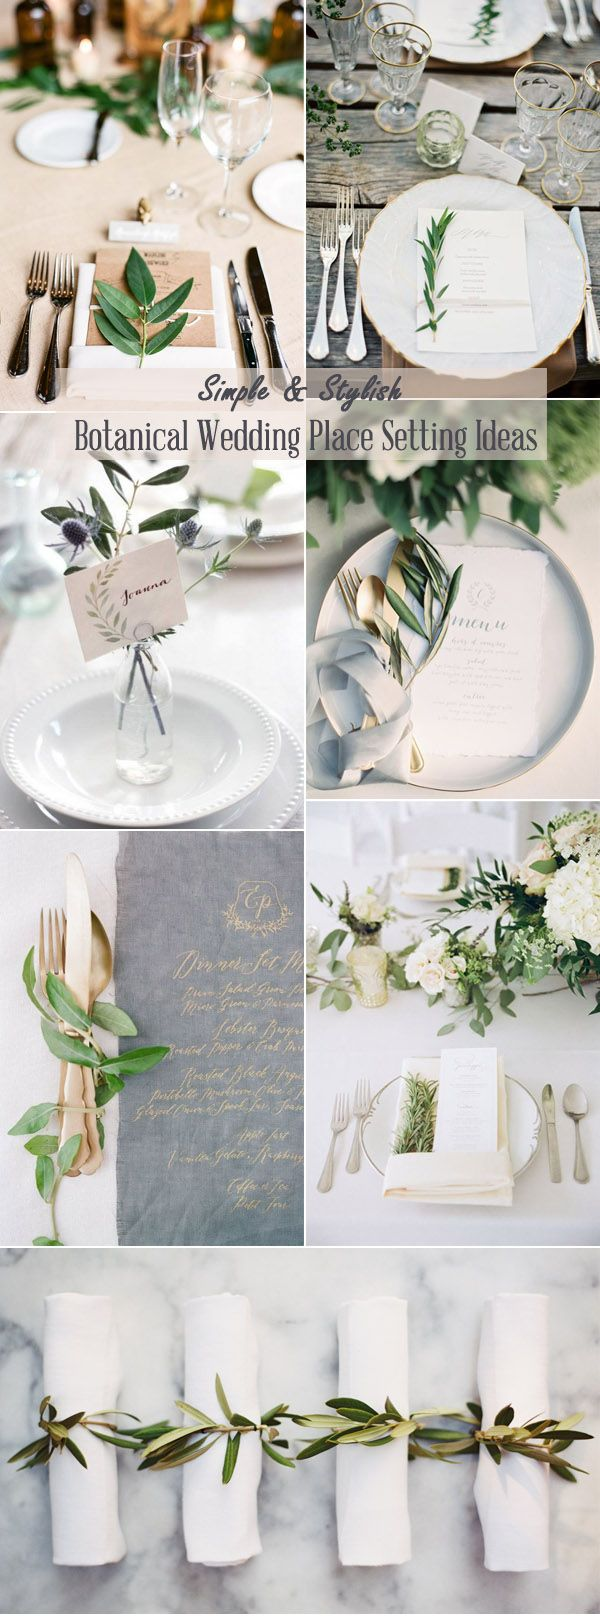 Diy wedding table decorations ideas   u  TrendsEasy Diy Organic Minimalist Wedding Ideas